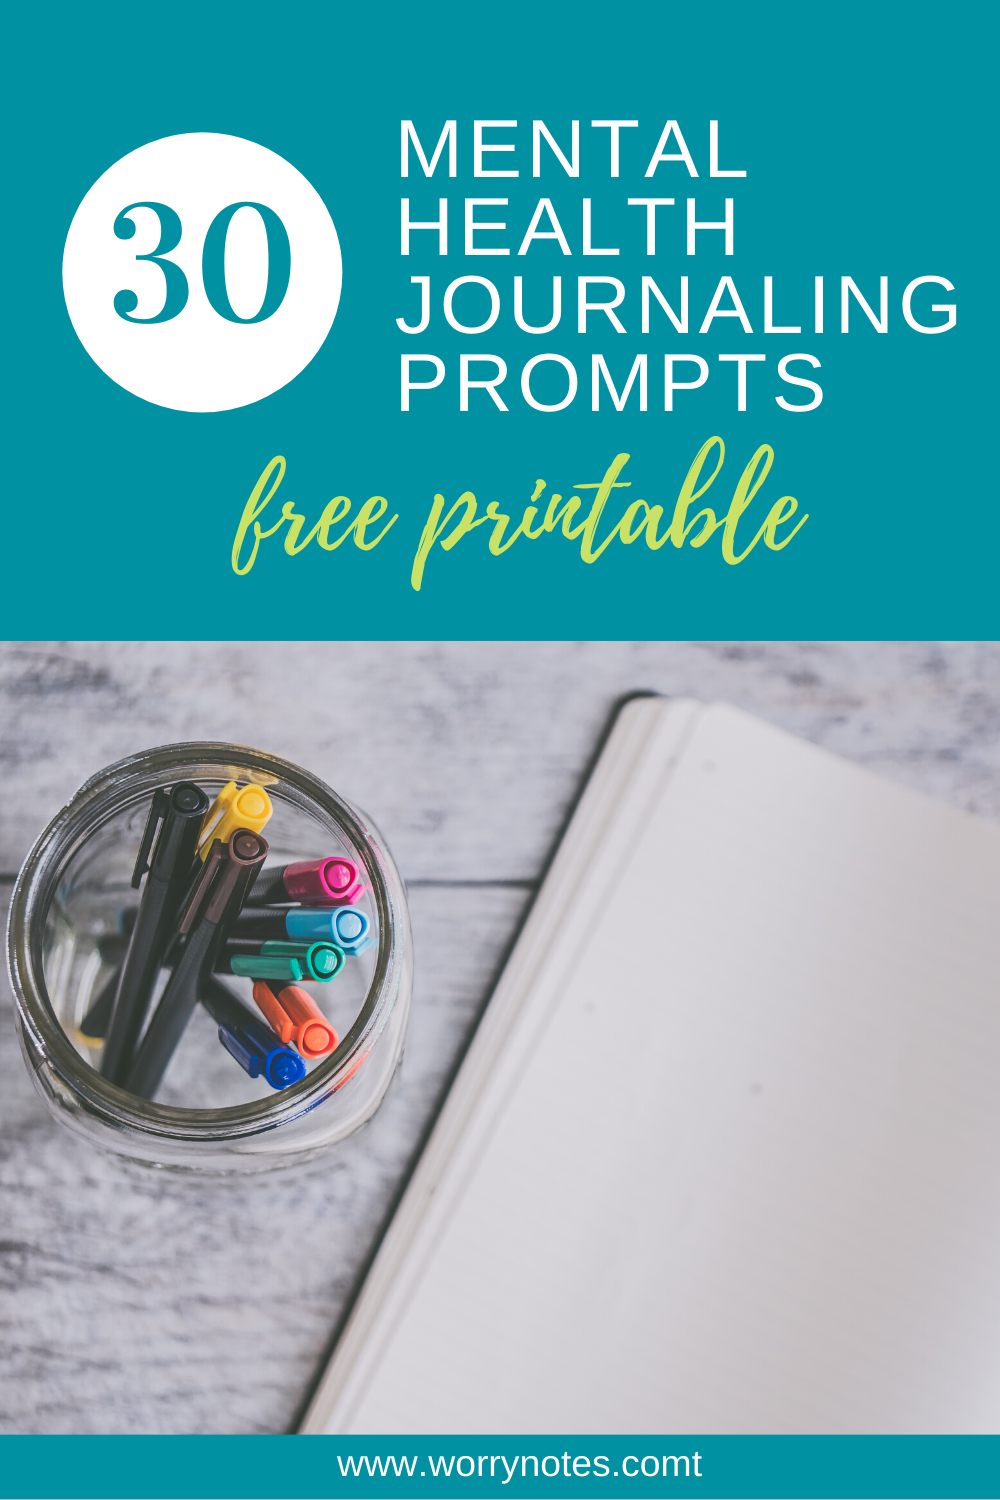 30 Mental Health Journaling Prompts